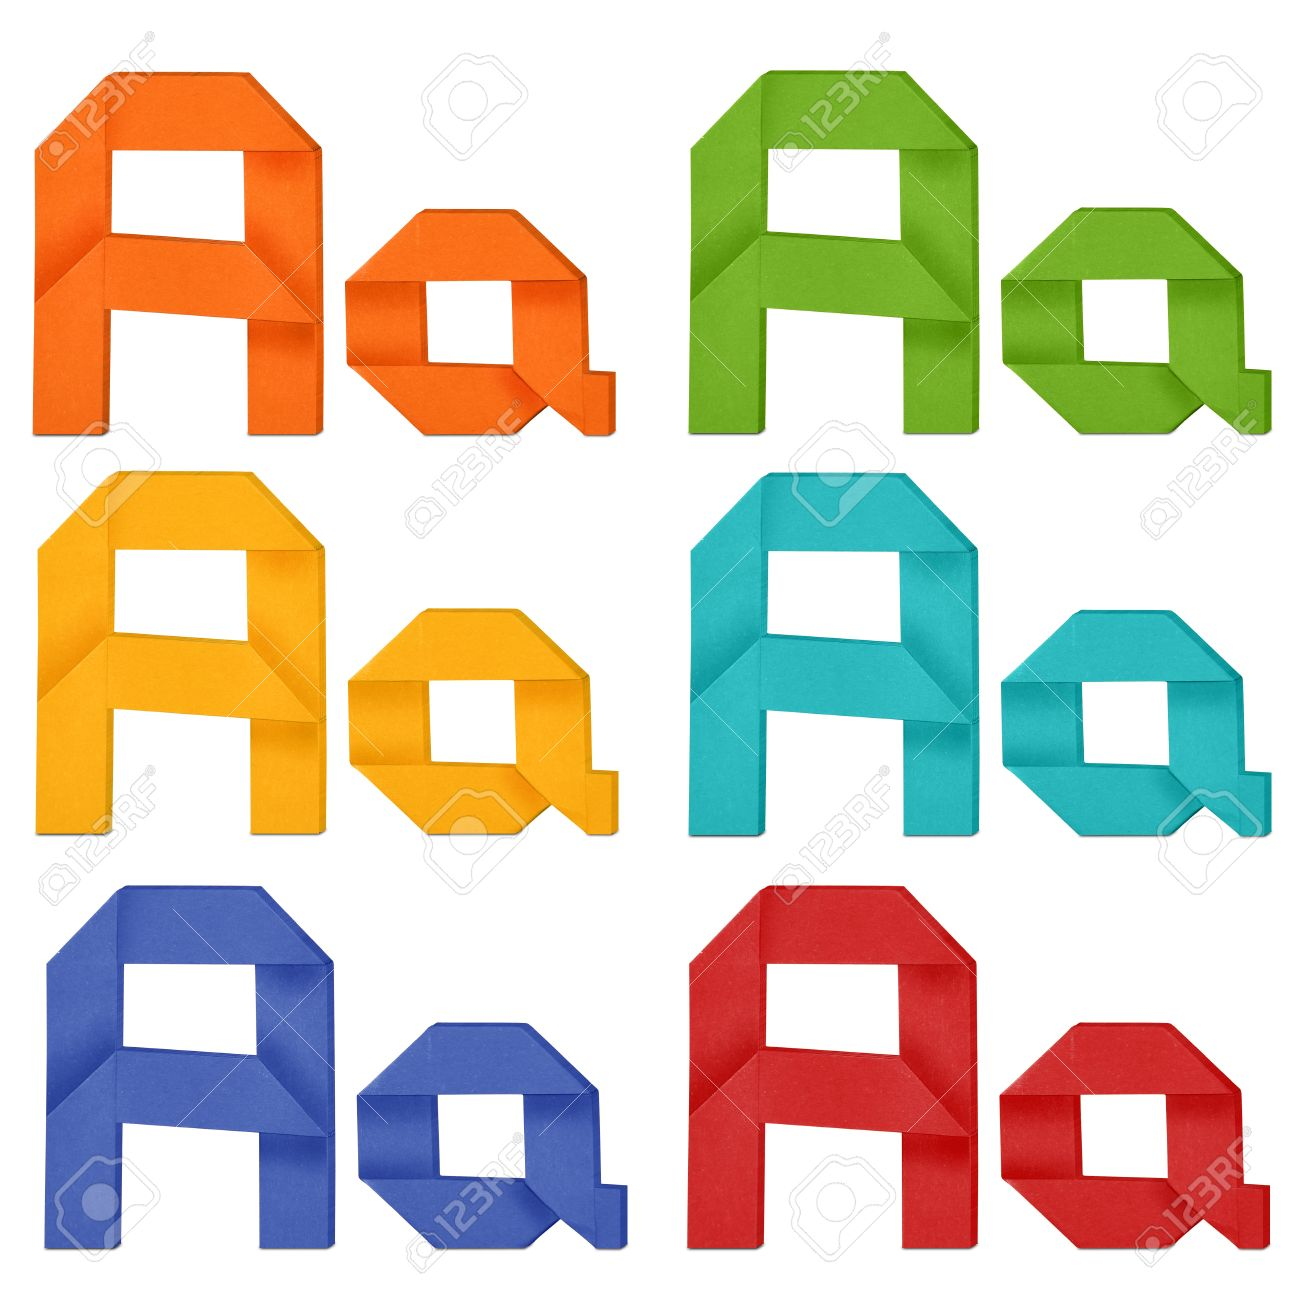 lettre origami Set Of Capital Letter And Lowercase Letter A In Various Color  lettre origami